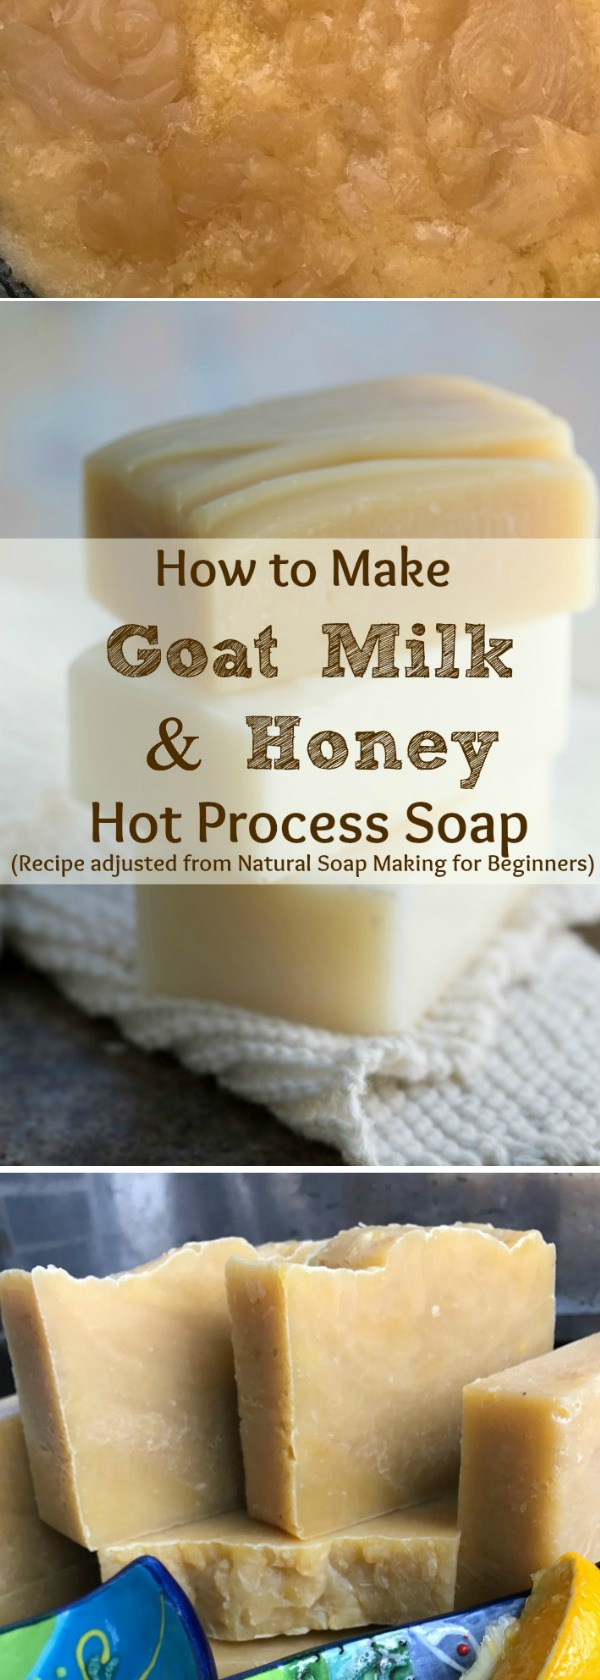 Goat Milk & Honey Hot Process Soap